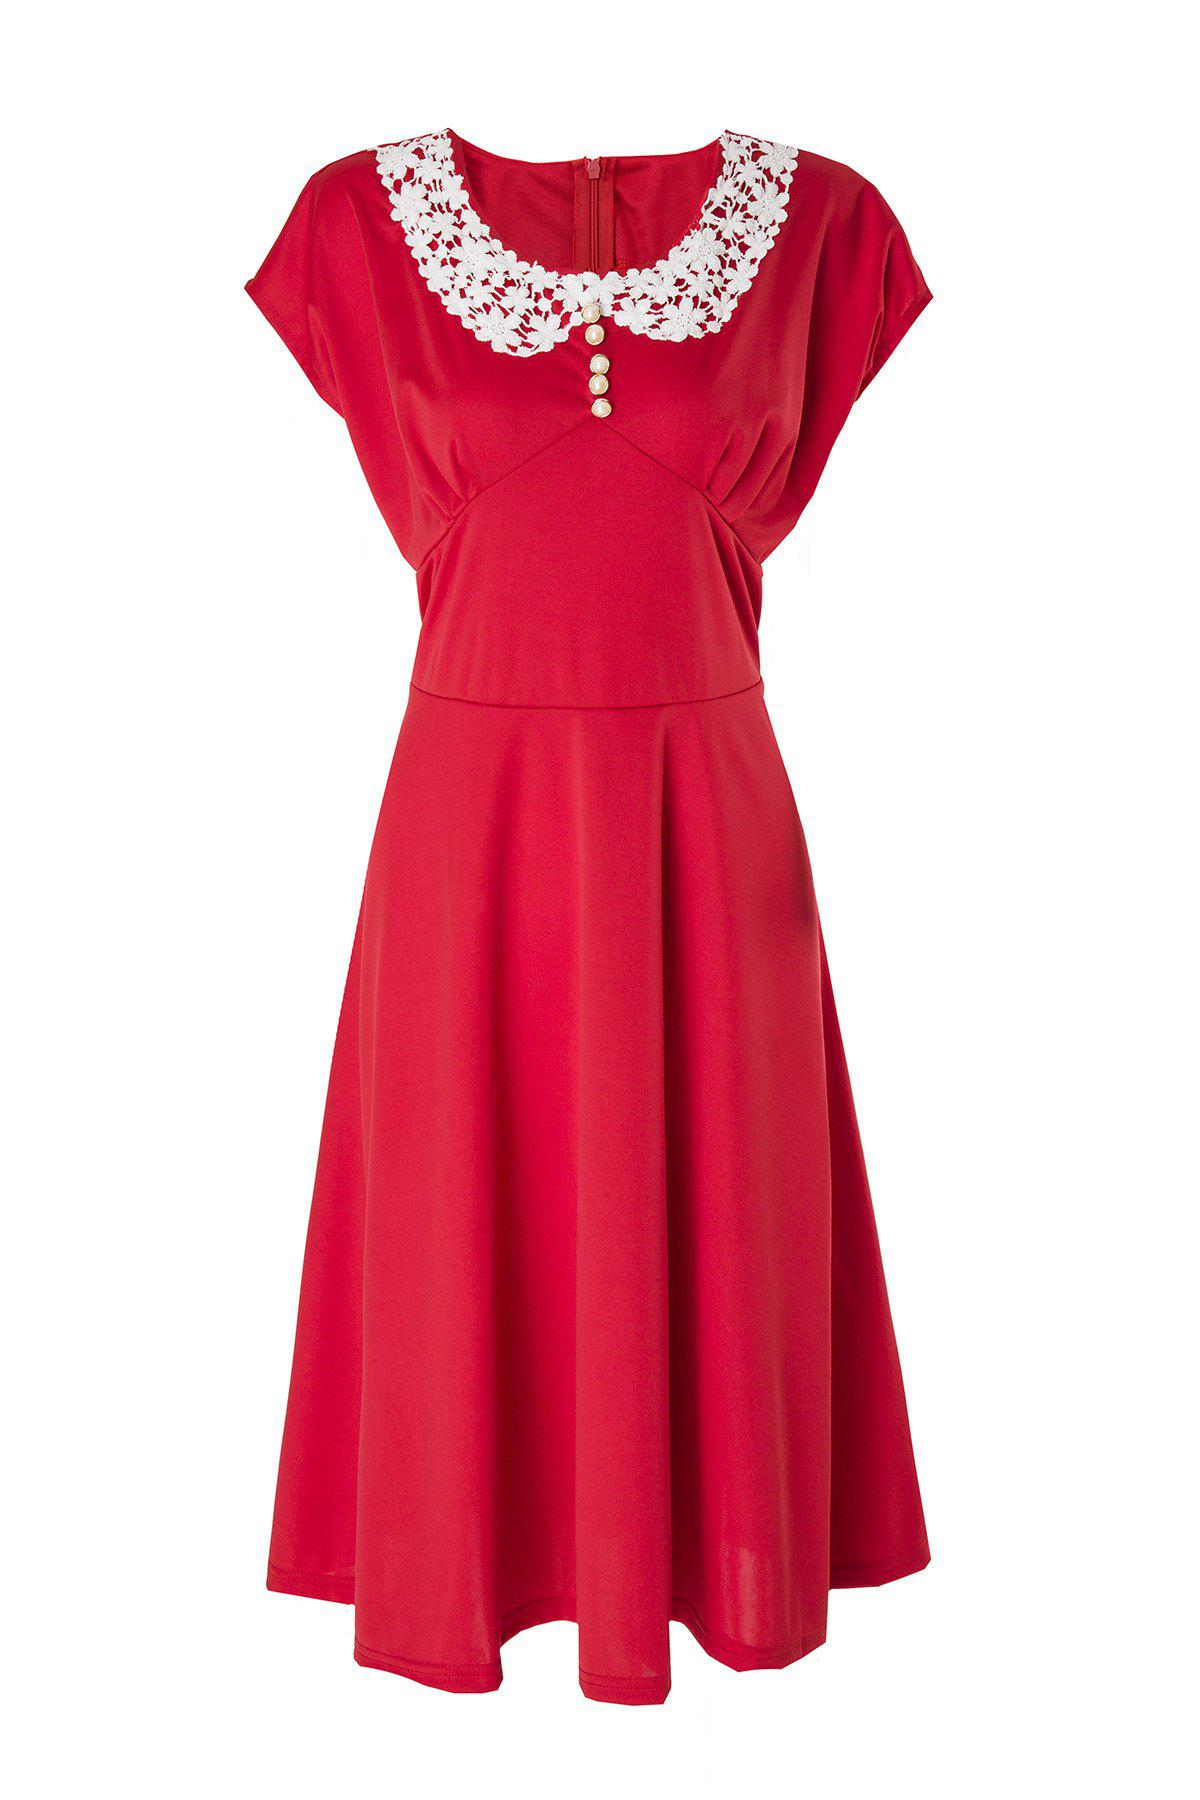 Vintage Cap Sleeve Peter Pan Collar Lace Crochet Women's Dress - RED L